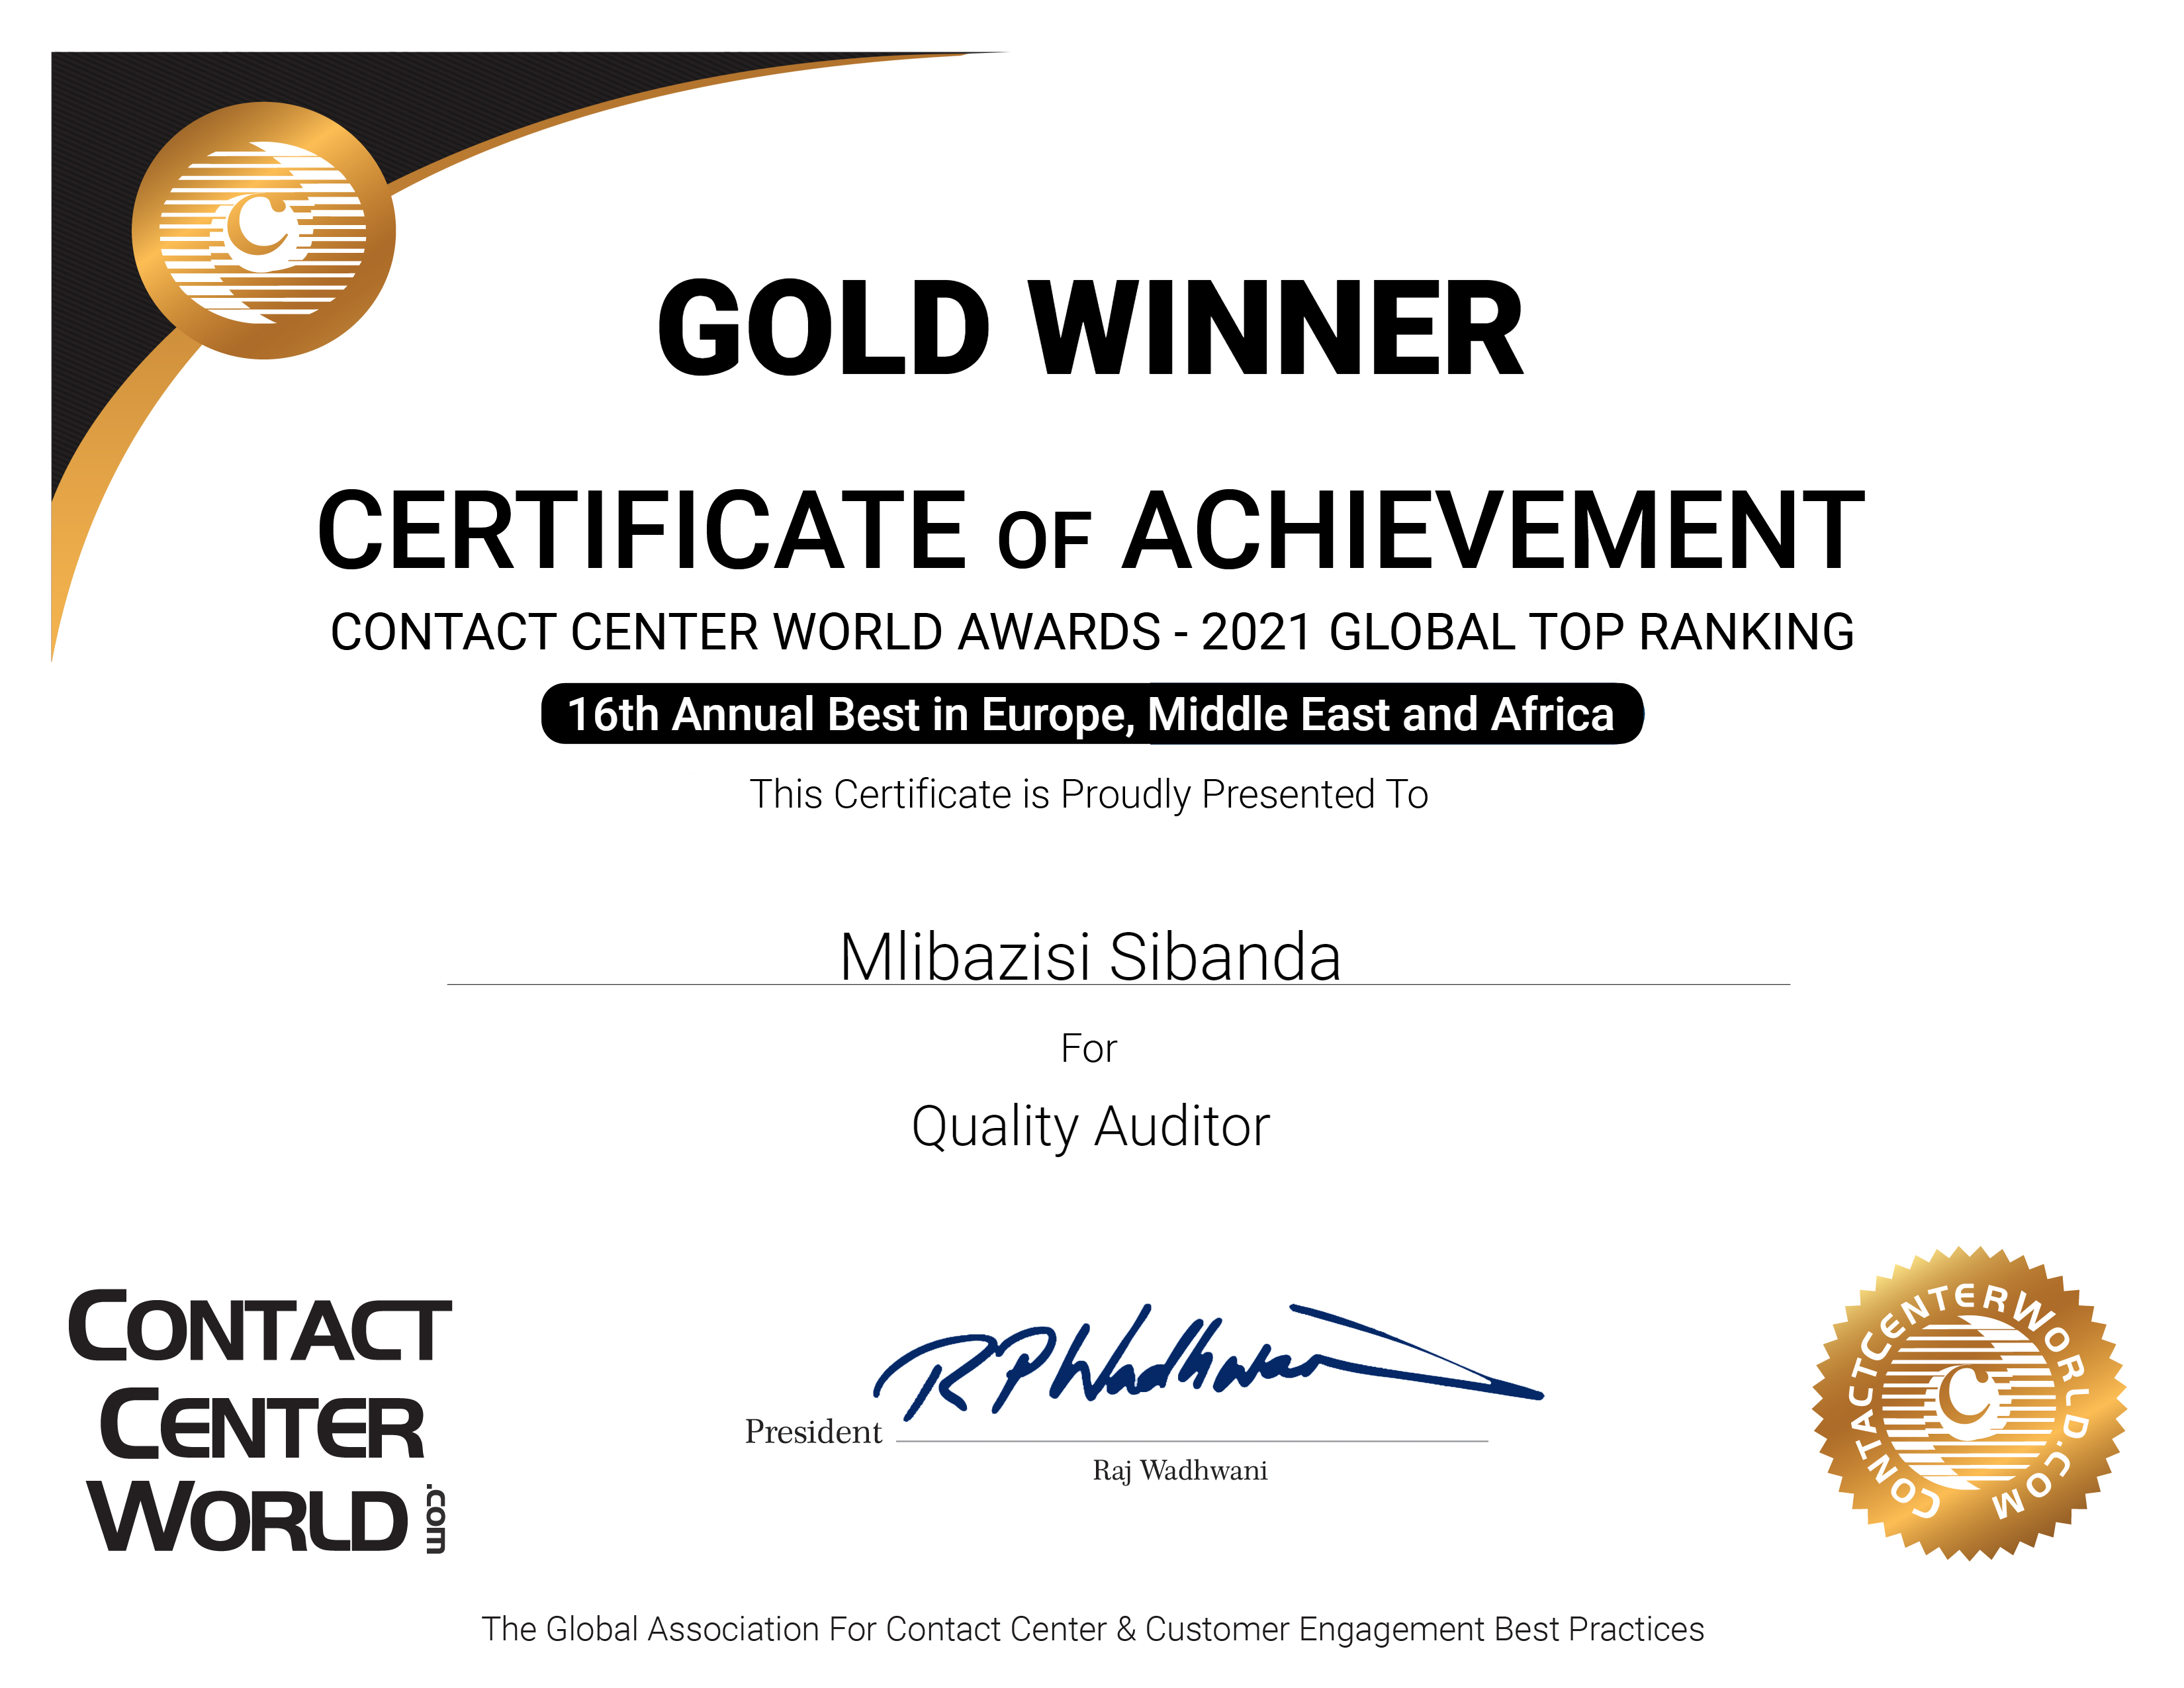 Best Quality Auditor 2021 Certificate